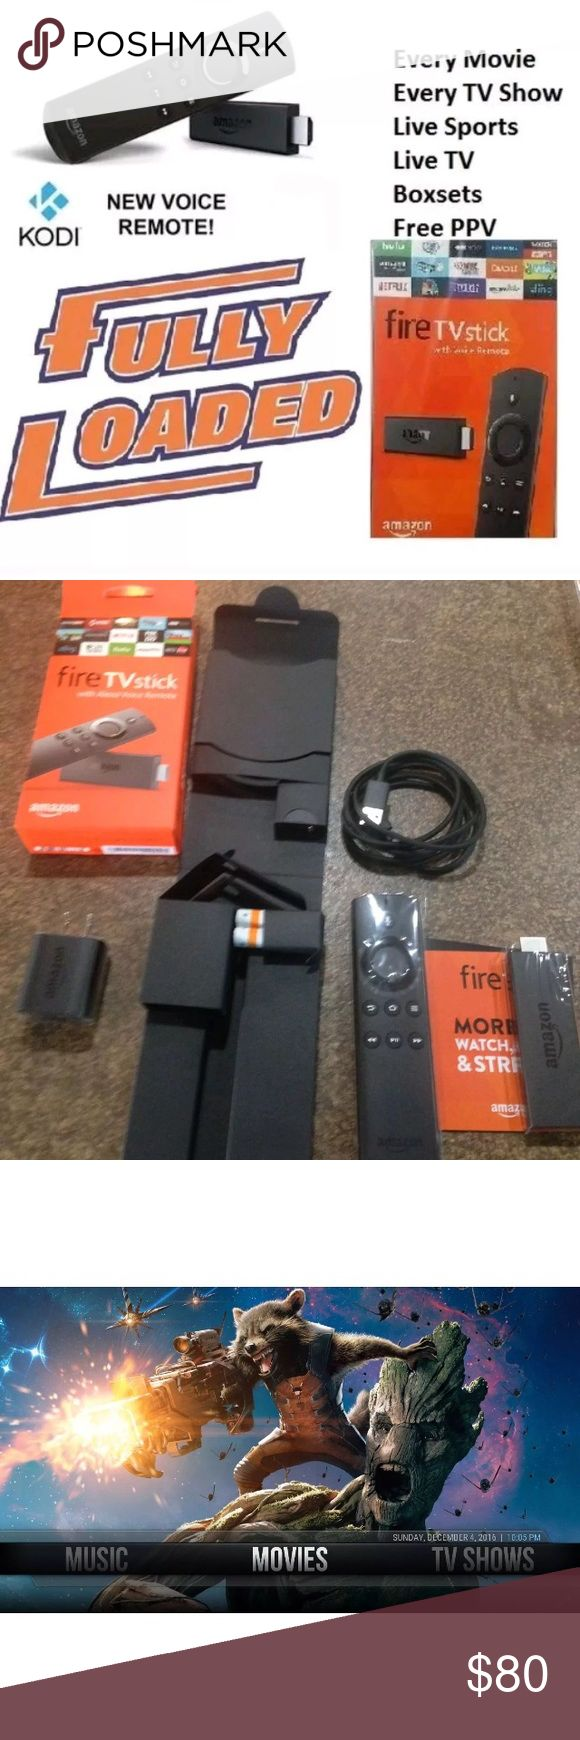 Amazon Fire Stick Fully Loaded for Entertainment Best Price - Best Quality Comes with Kodi and tons of free entertainment. Movies, TV Shows, Cartoons, Pay-Per View, XXX, Sports Packages and etc check out website for more info Jboxtv.com and Jboxtv.com/firestick.html amazon Other